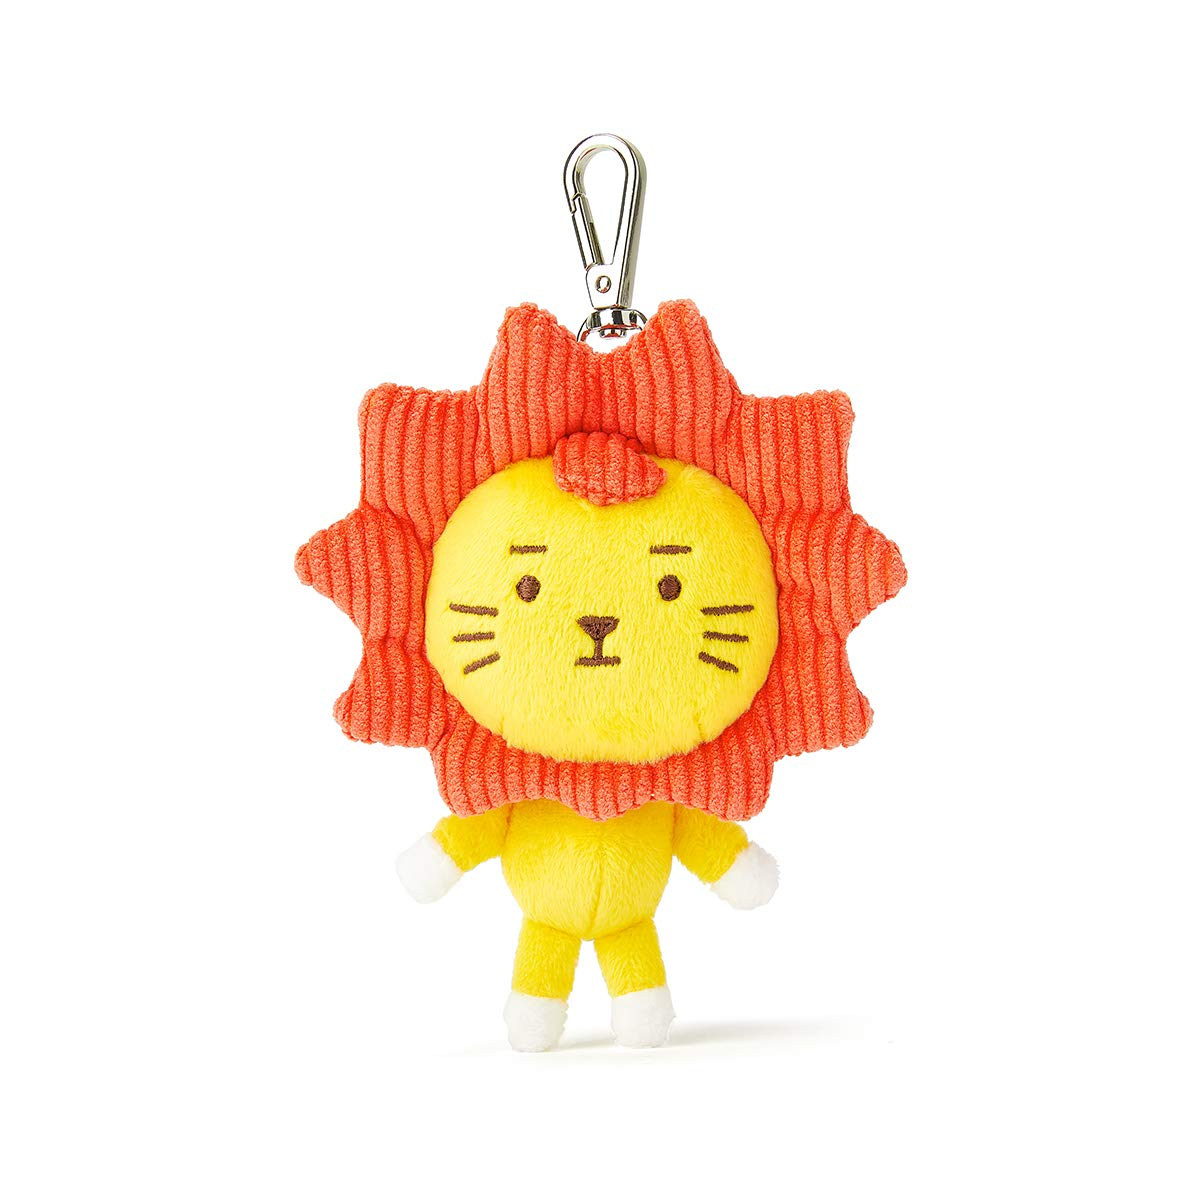 Roy6 Merchandise with Line Friends - ROYAN Character Bag Charm keychain keyring Key Holder, Red